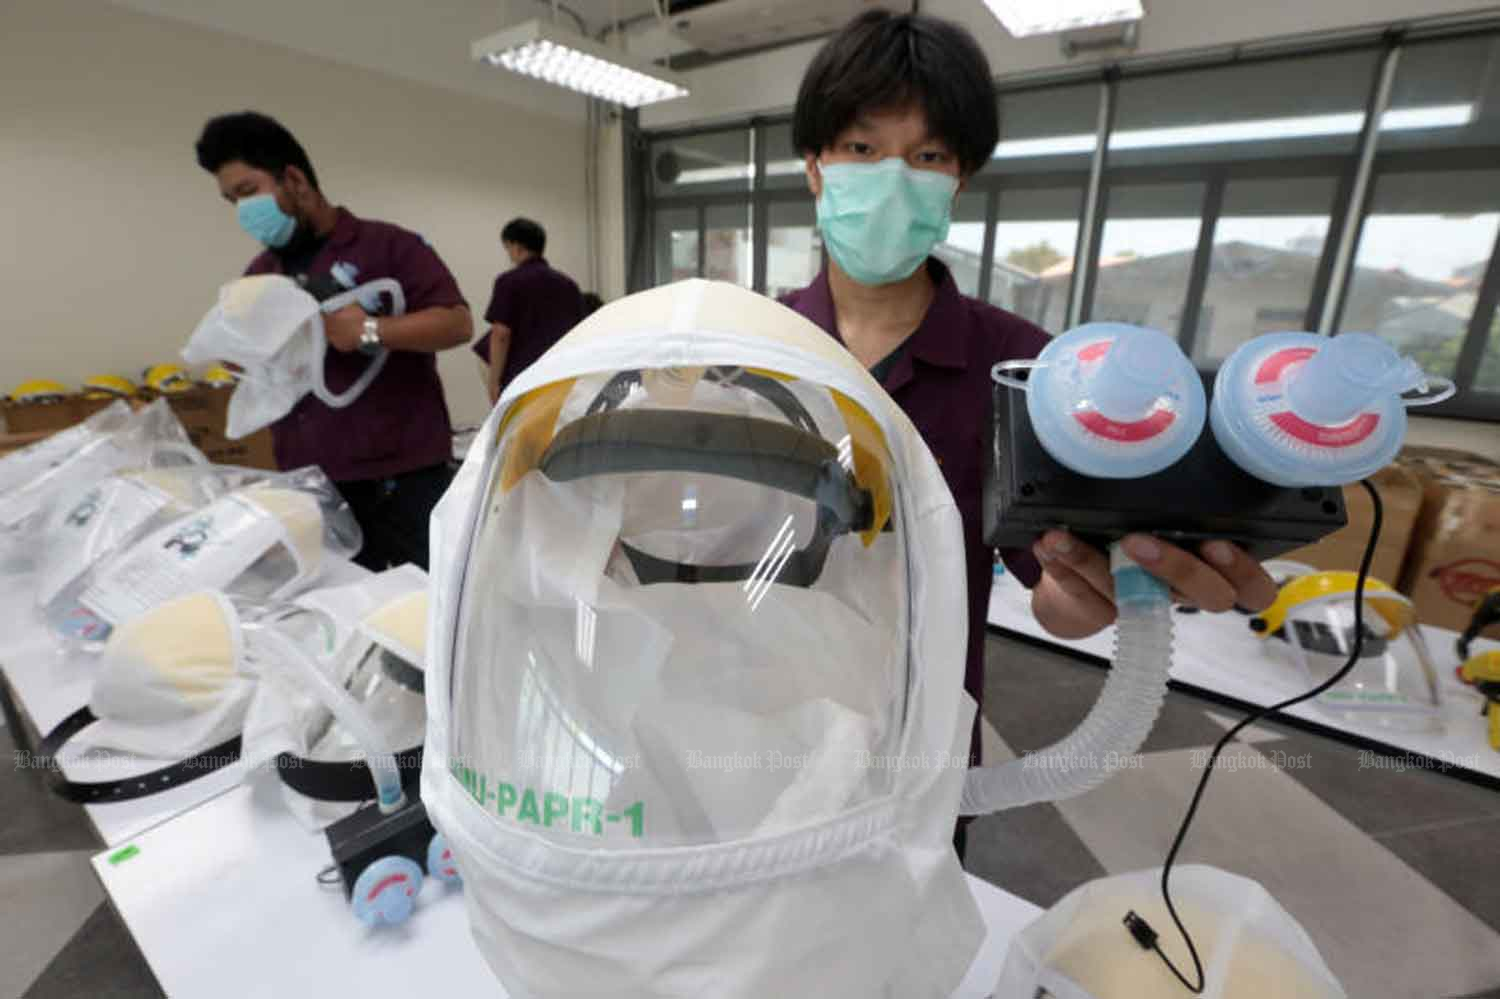 Powered air-purify respirator (PAPR) helmets are being developed by Vajira Hospital's Faculty of Medicine for use among hospitals treating Covid-19 patients with critical conditions to better protect medical personnel against the virus. (Photo by Chanat Katanyu)